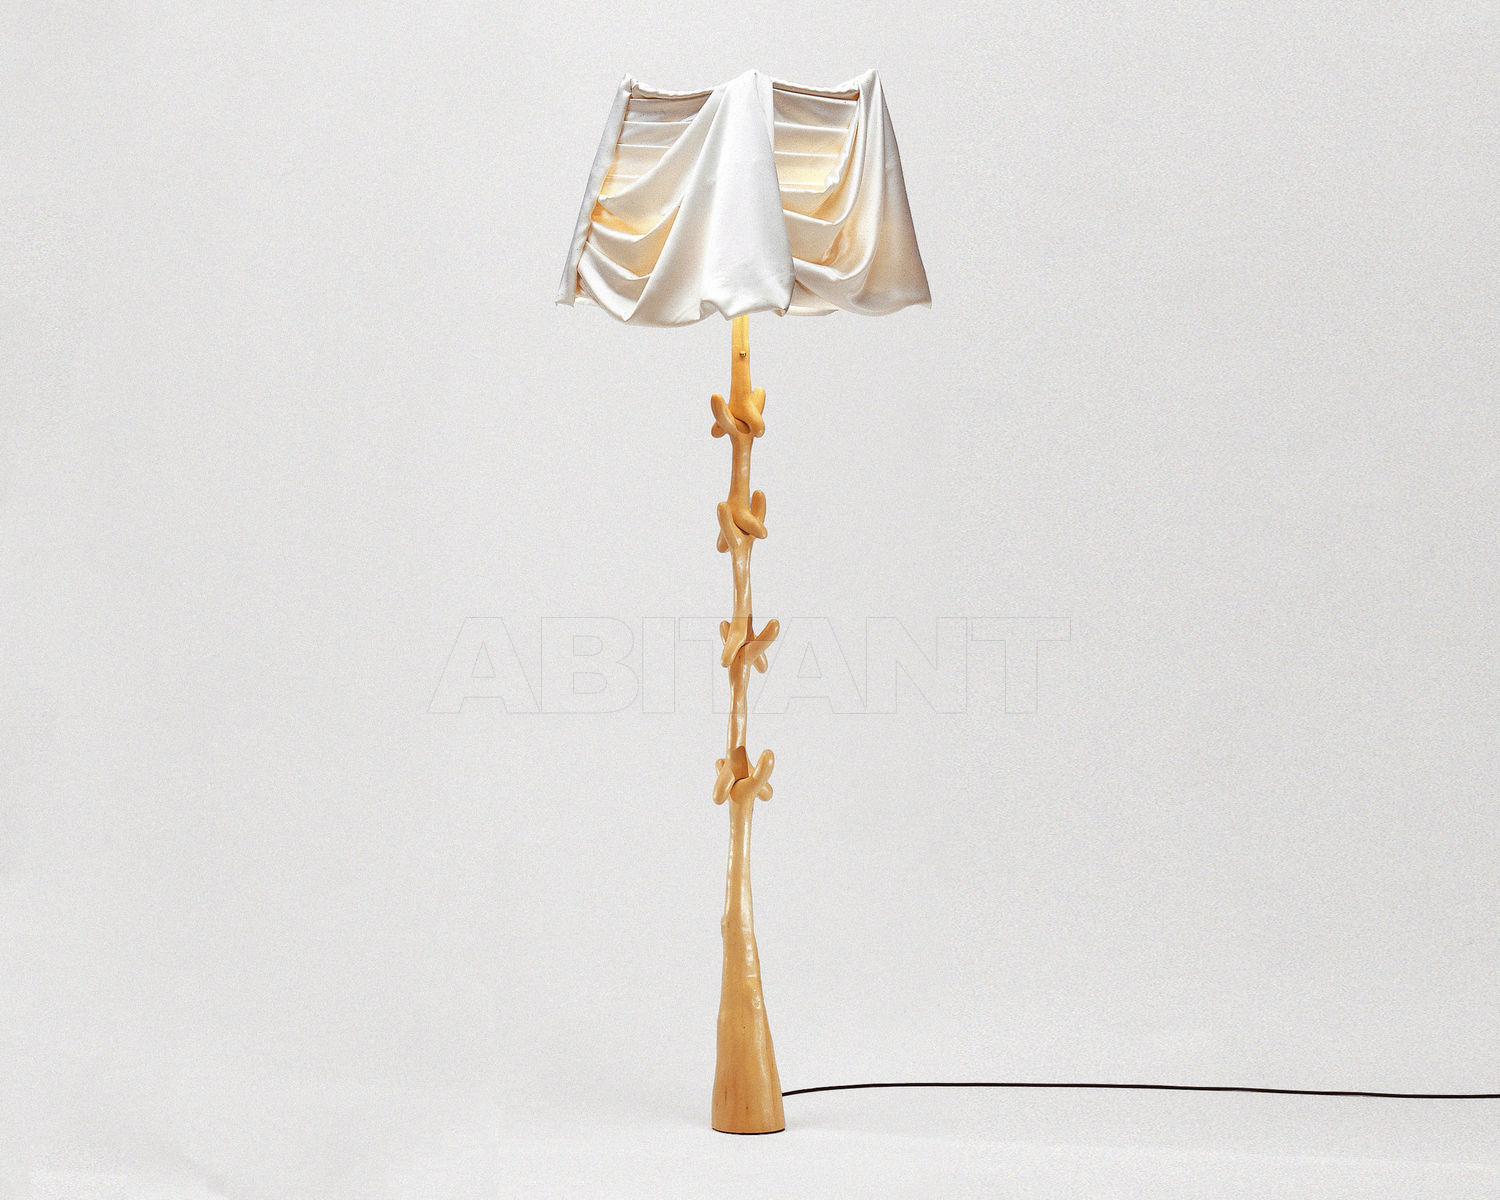 Buy Floor lamp MULETAS B.D (Barcelona Design) ART DA0065